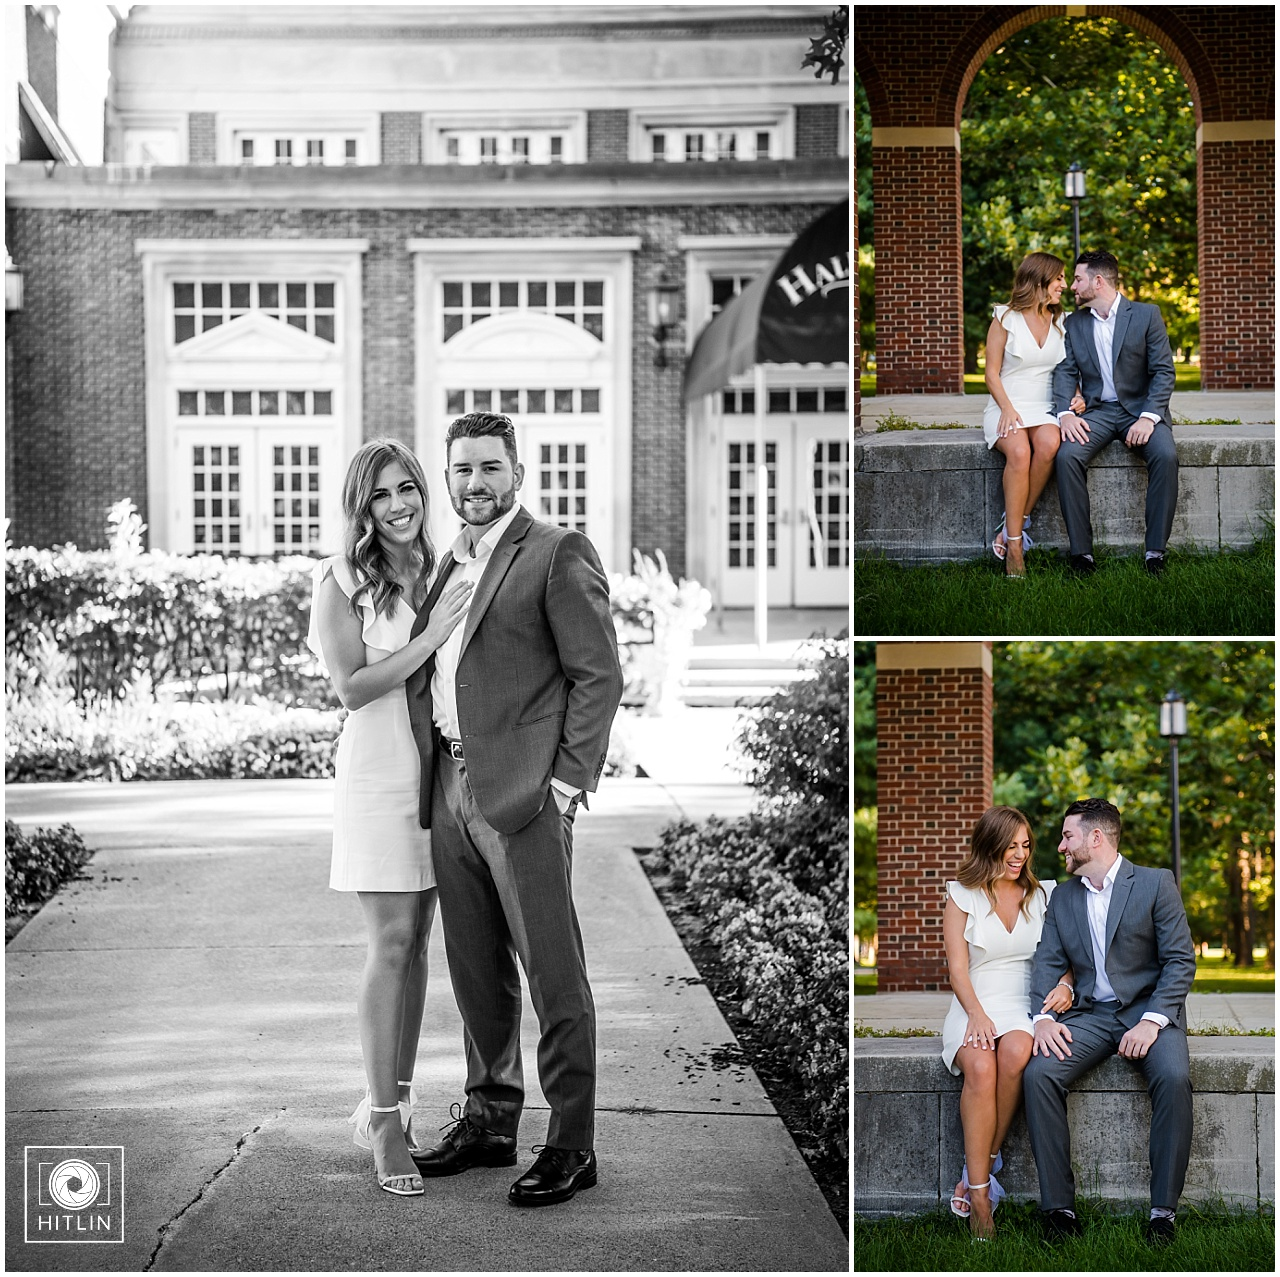 Lindsay & Max's Engagement Session